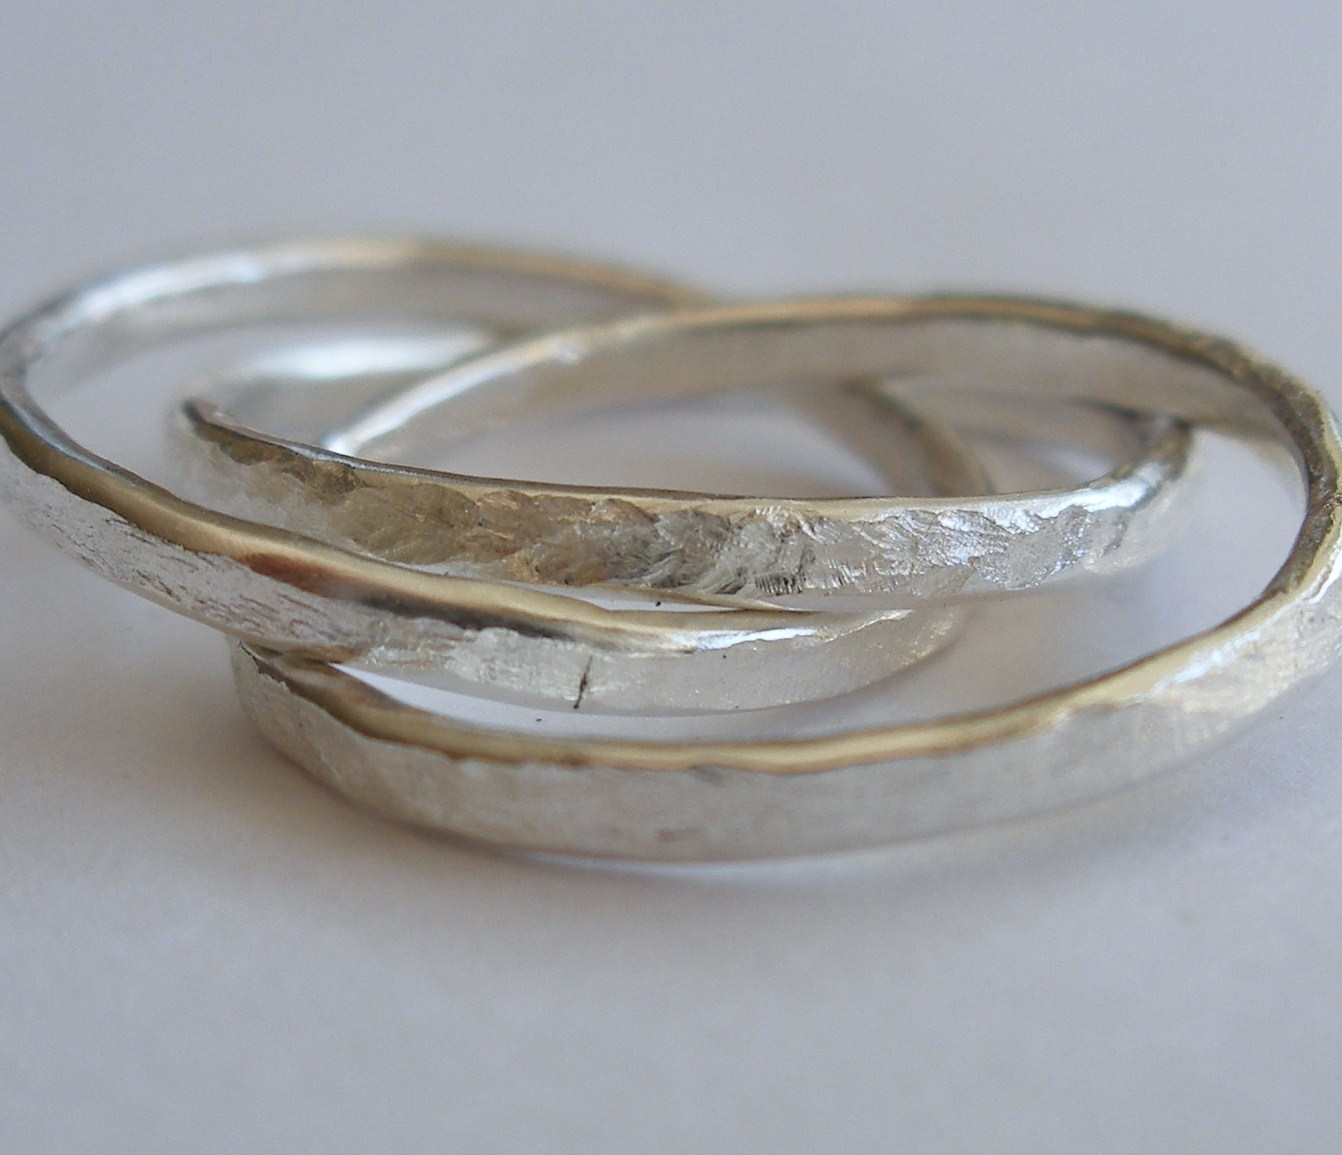 interlocking russian wedding rings - Russian Wedding Ring